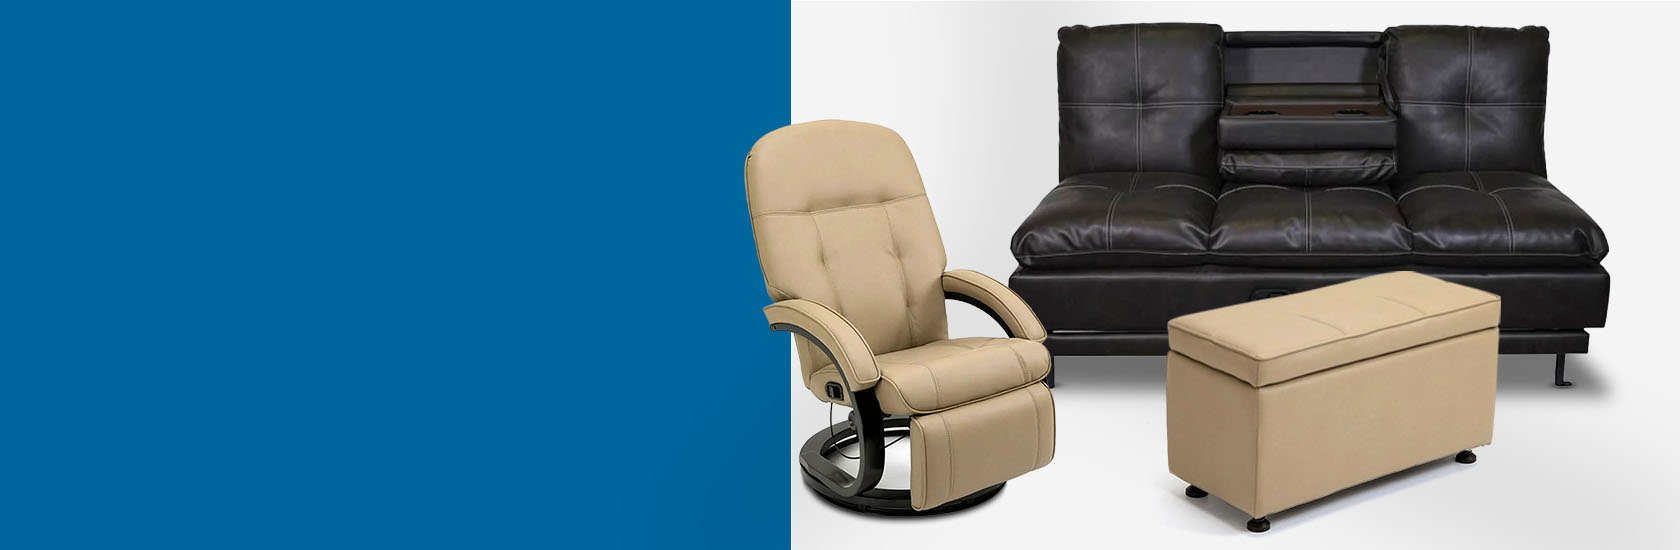 Shop & Save up to $300 on RV Furniture